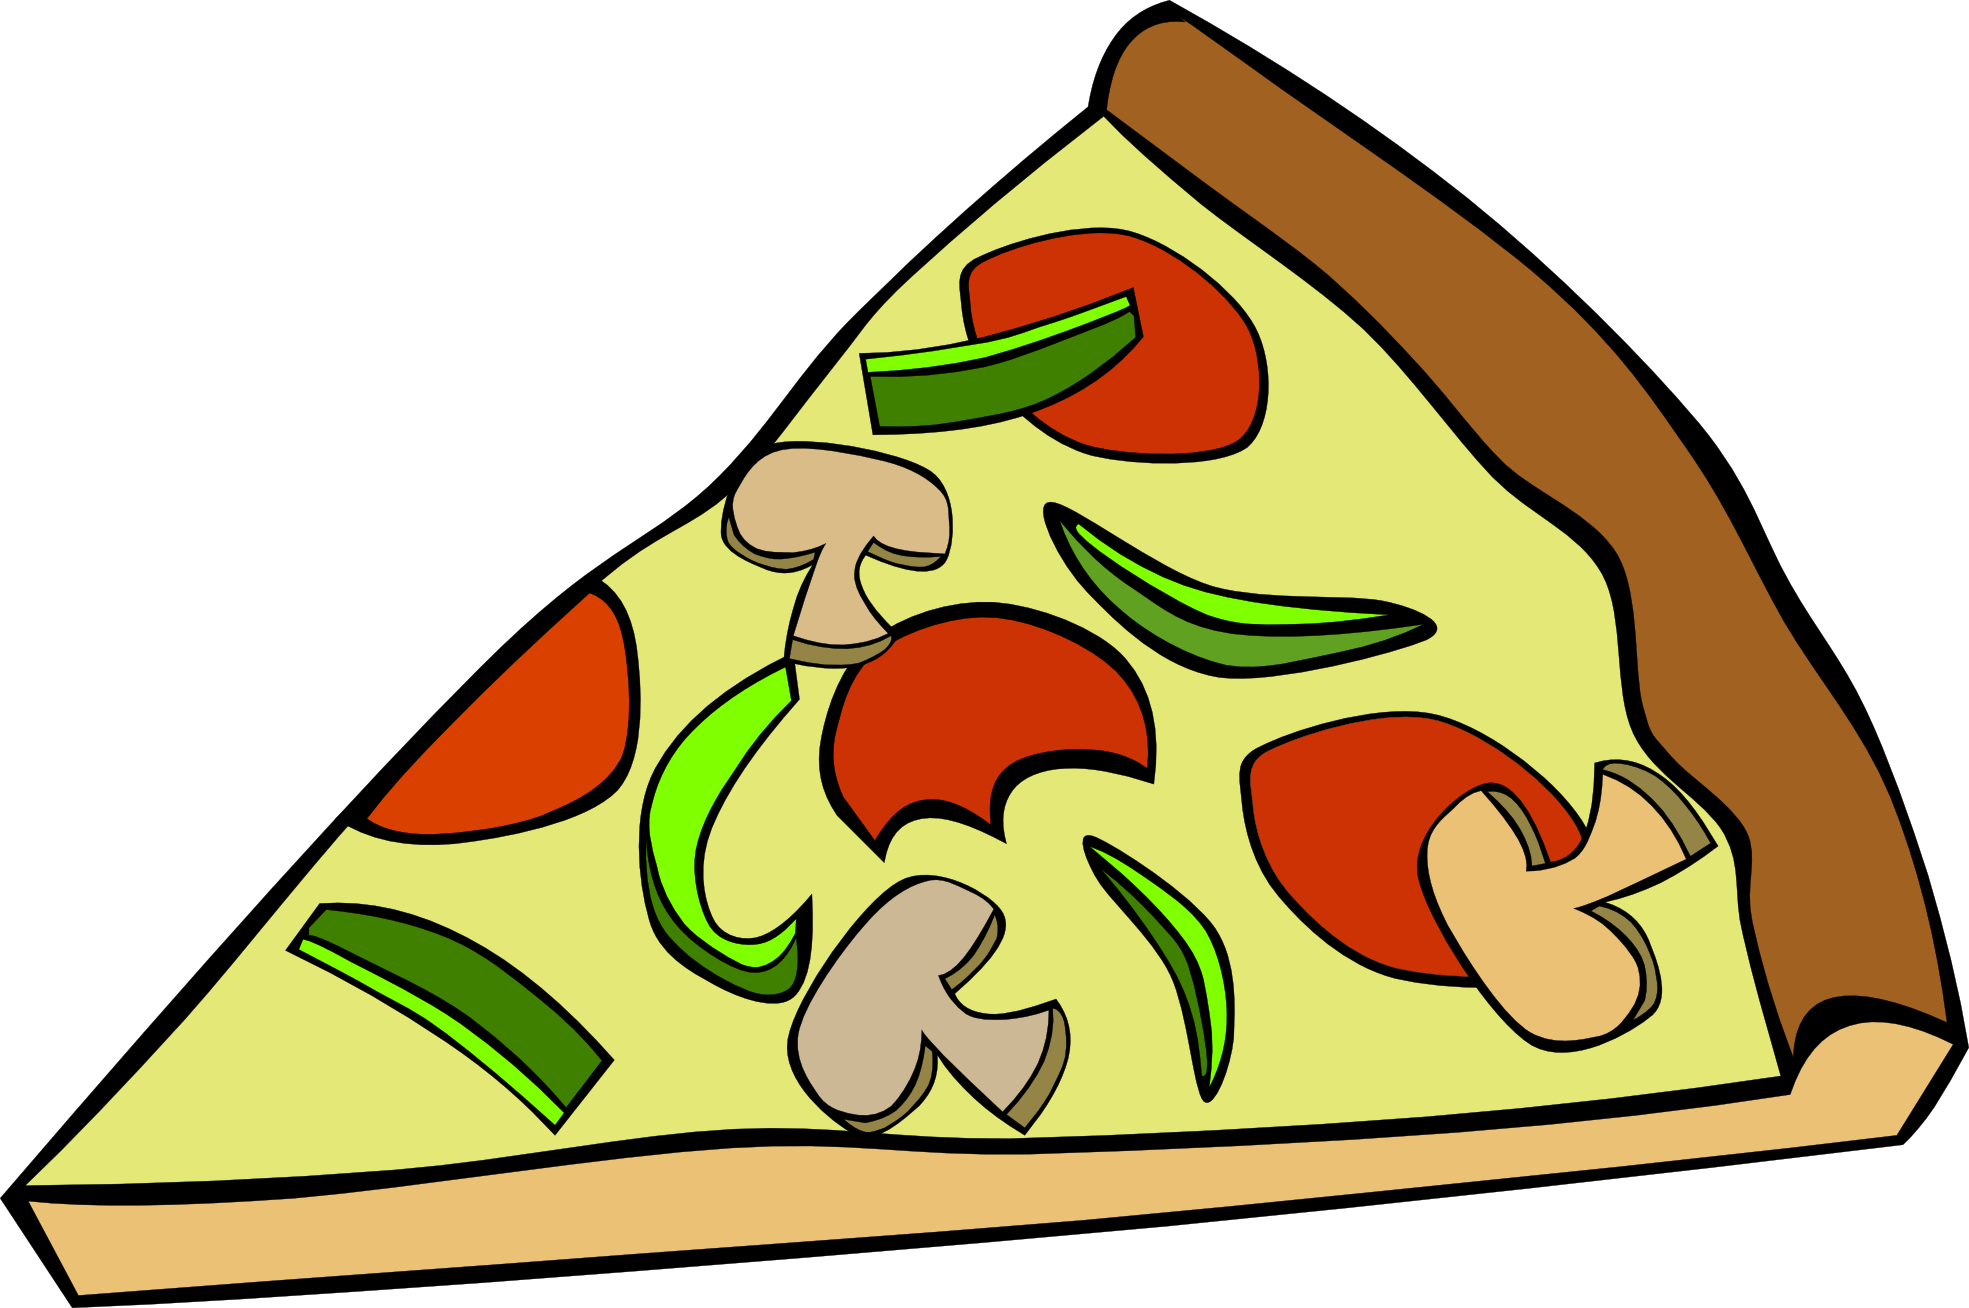 Lunch tray clipart 3